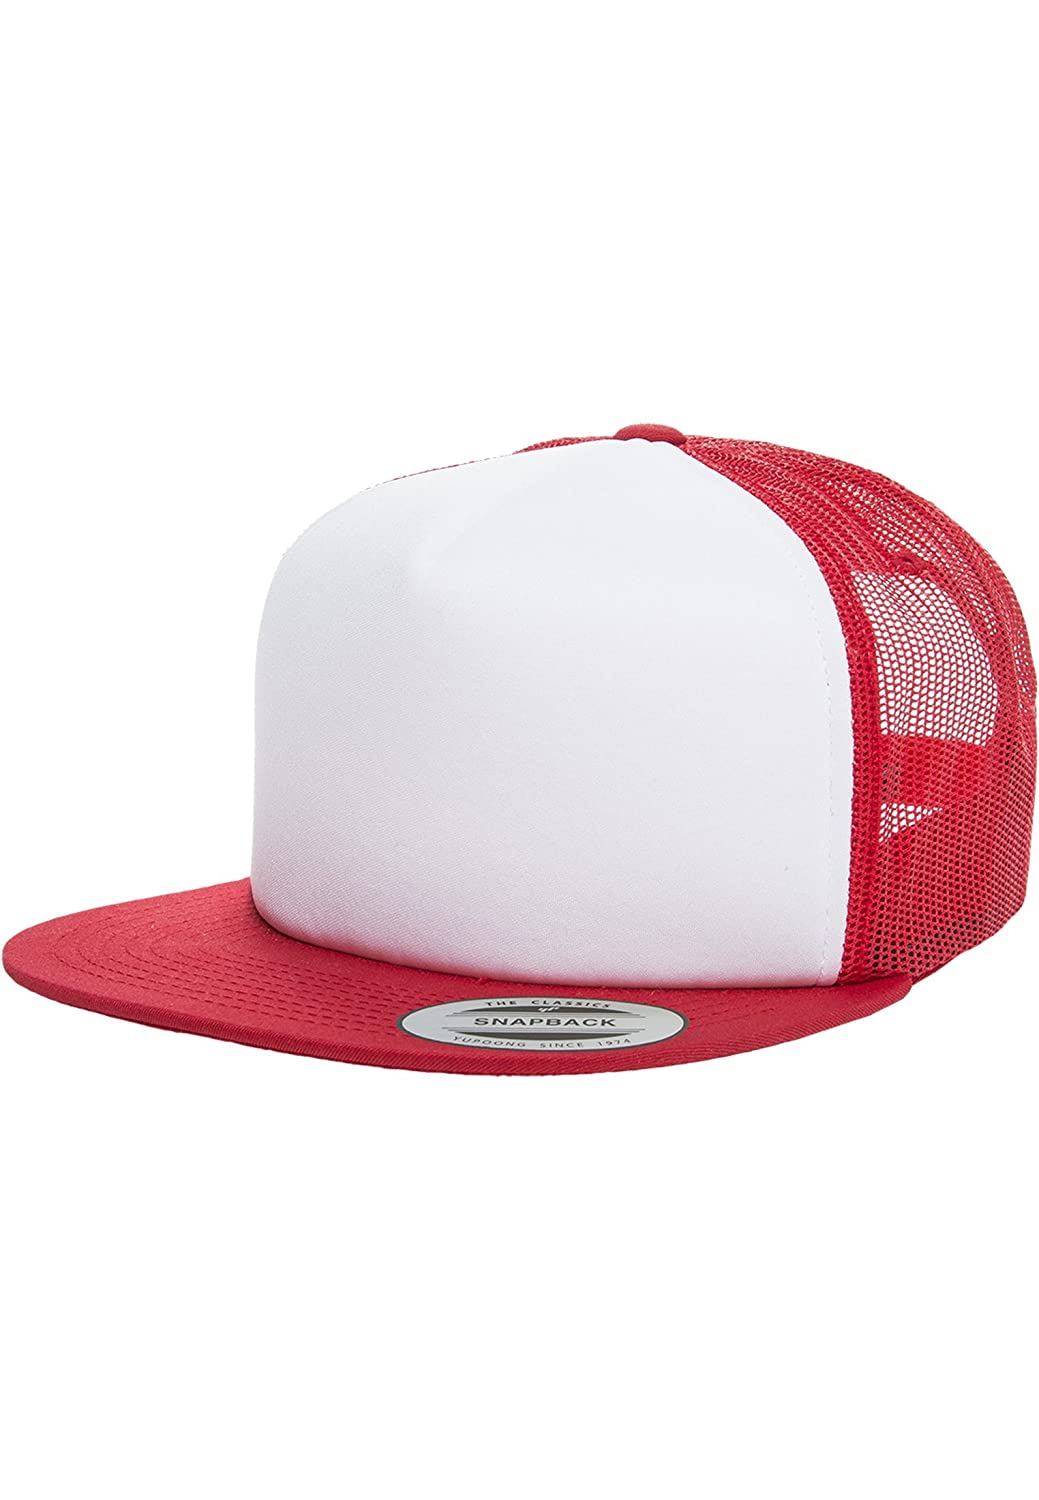 Urban Classics Foam Trucker with White Front red//wht//red one Size